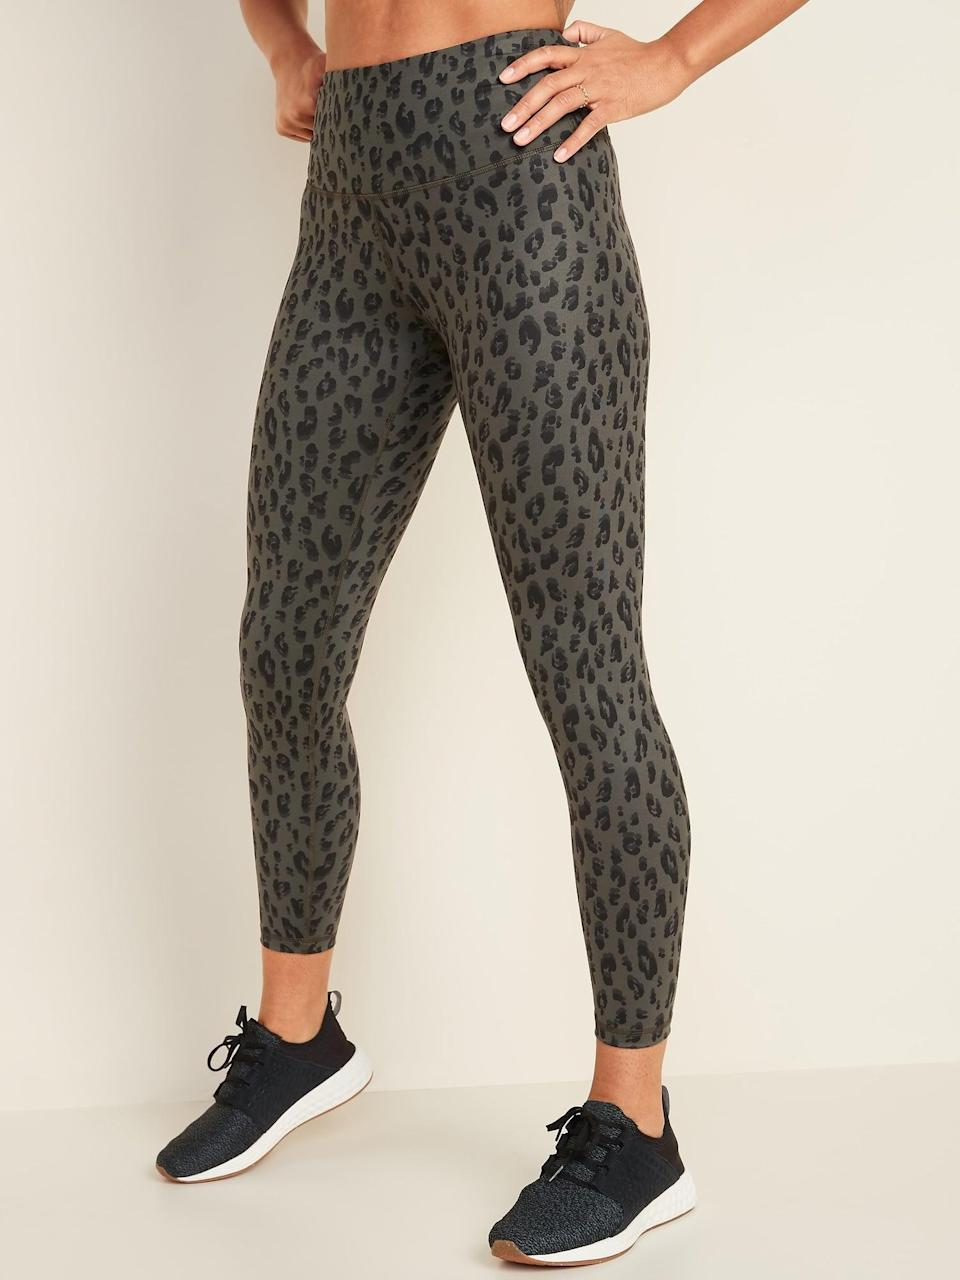 <p>The <span>High-Waisted Elevate 7/8-Length Leggings </span> ($24, originally $30) are great for running or other intense workouts because they're made with a four-way stretch material.</p>